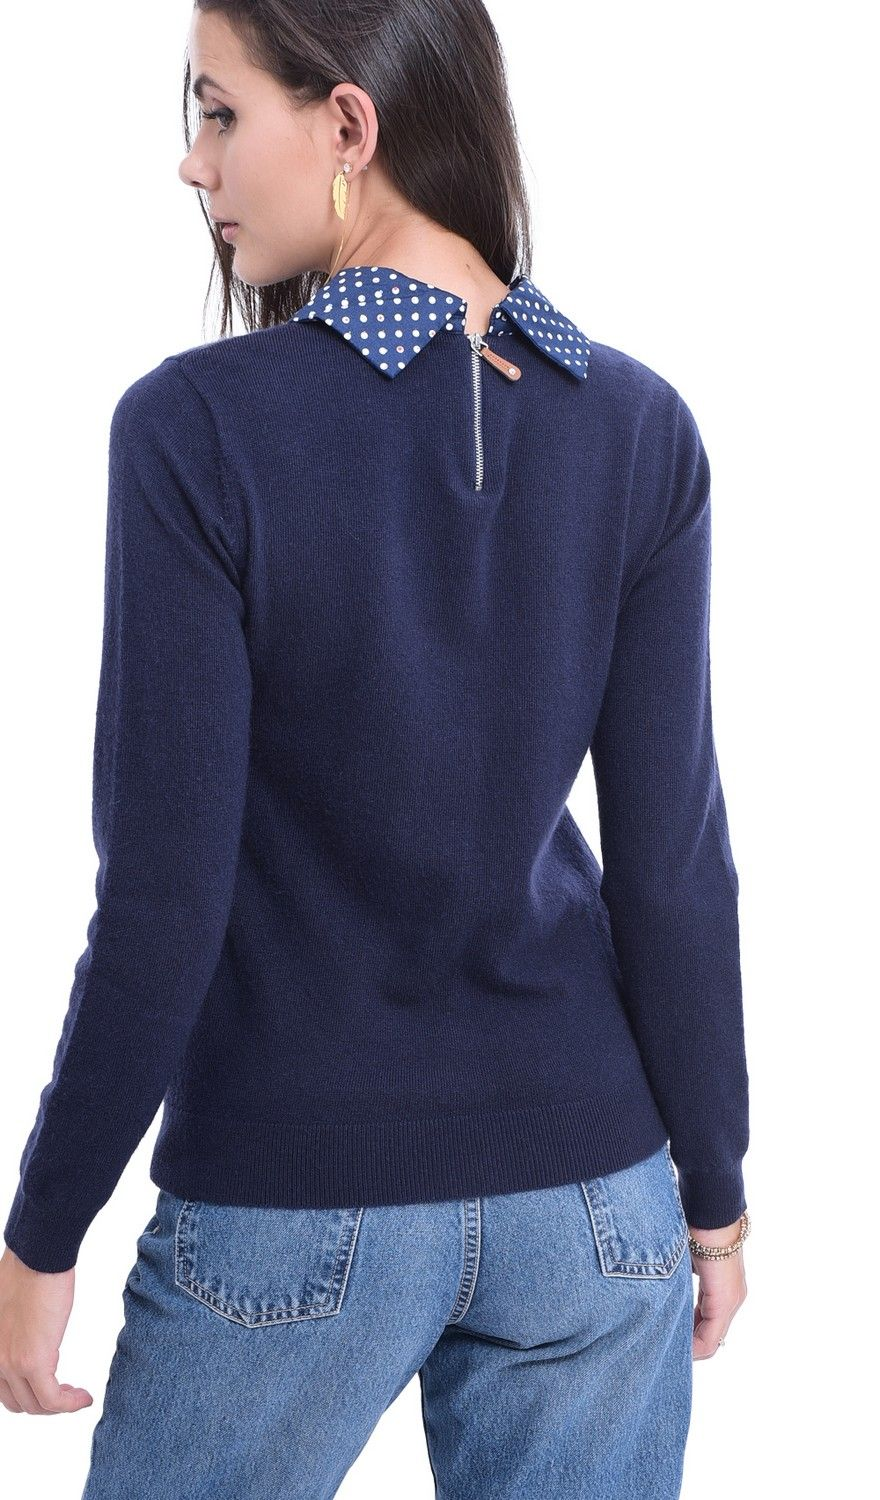 William De Faye Polka Dot Collar Sweater in Navy